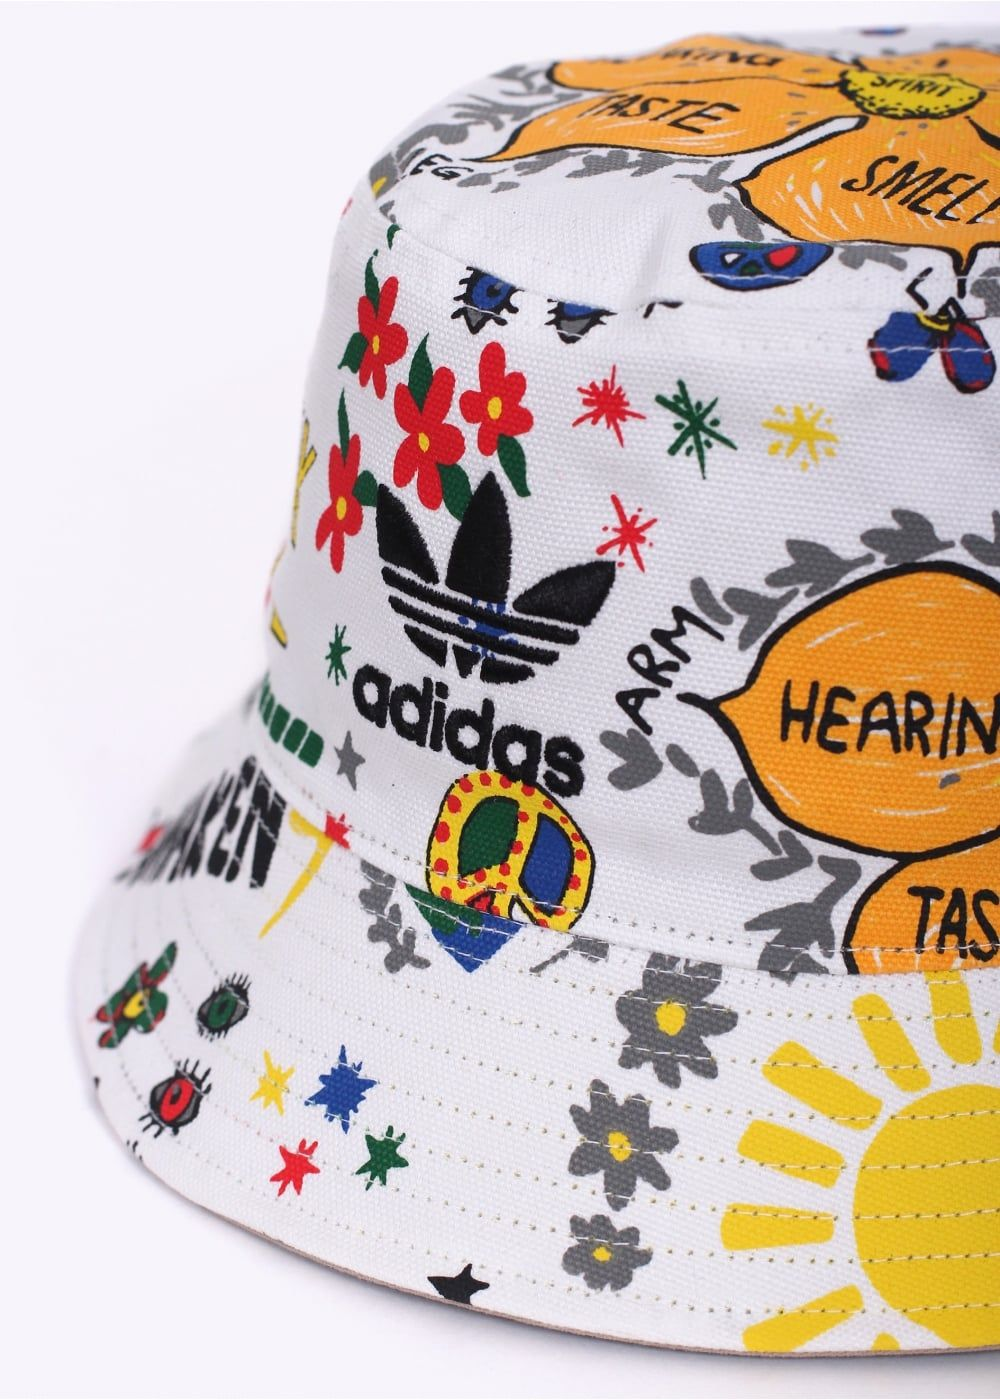 Adidas Originals x Pharrell Williams Artist Reversible Bucket Hat - White -  £22 - Triads.co.uk  e9cd005d8